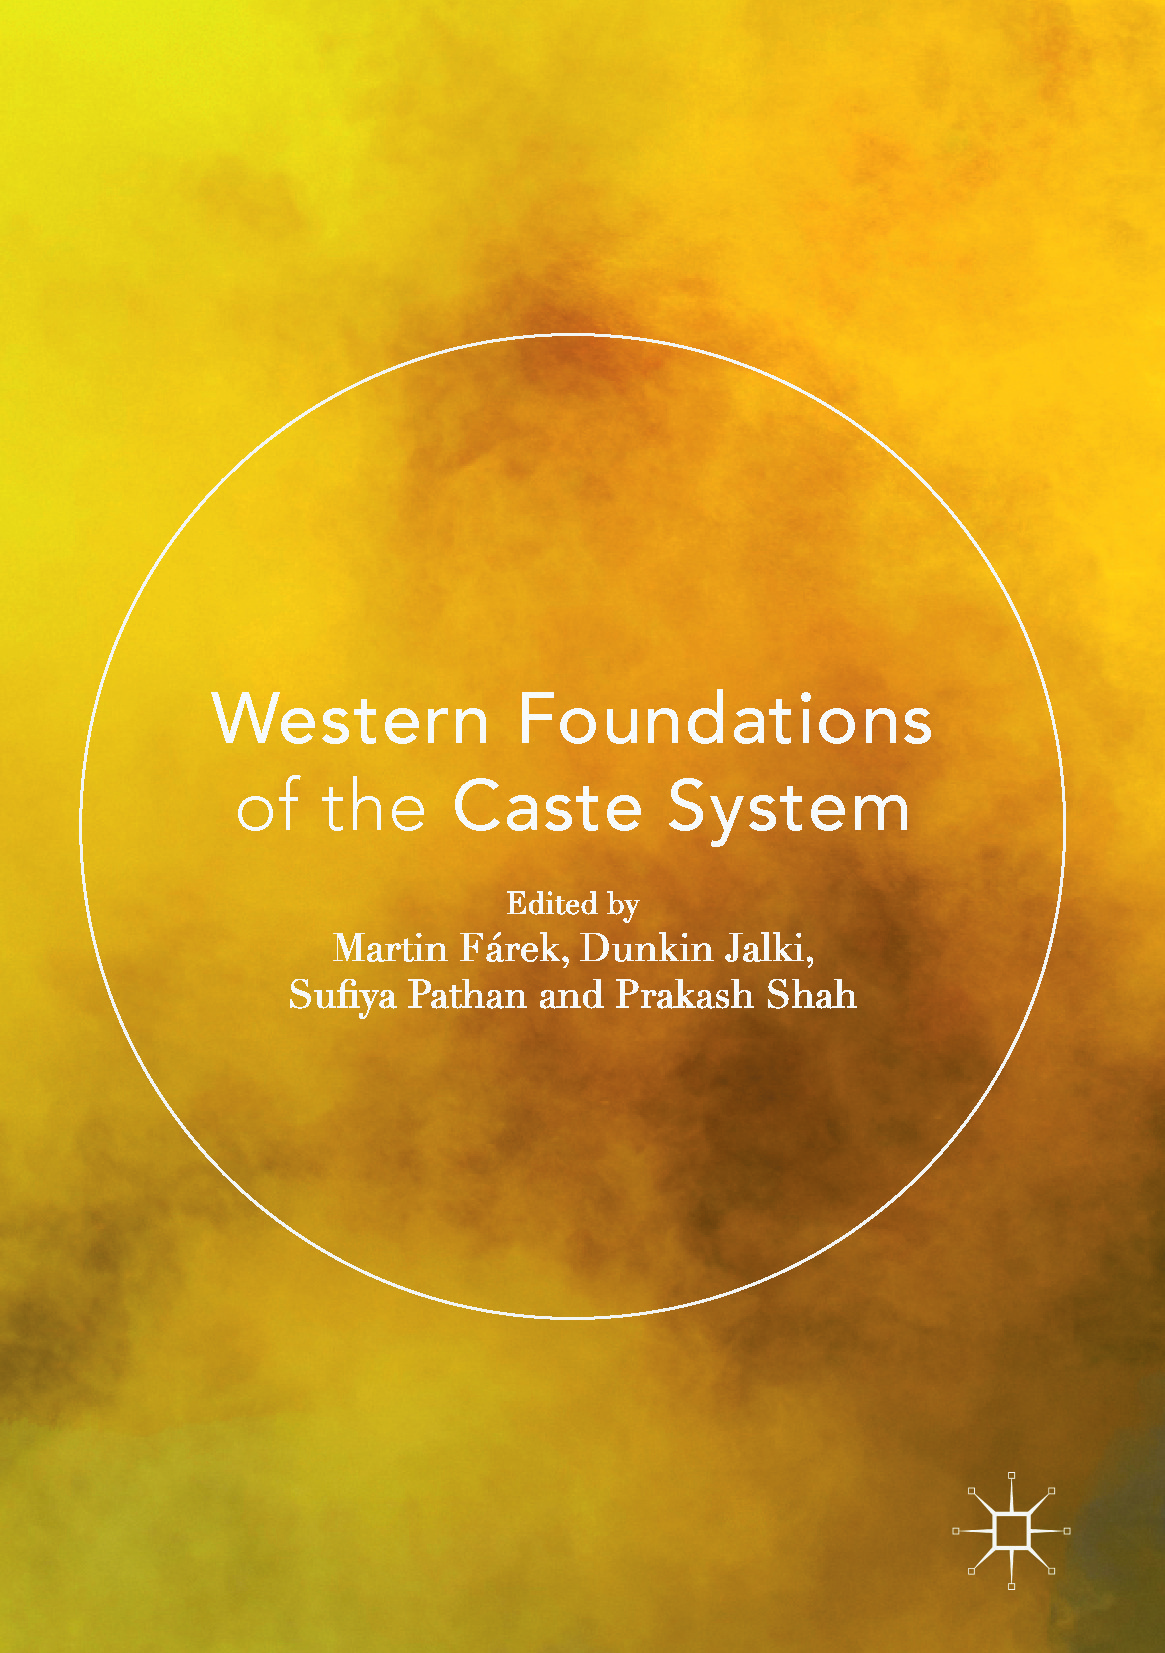 Fárek, Martin - Western Foundations of the Caste System, ebook